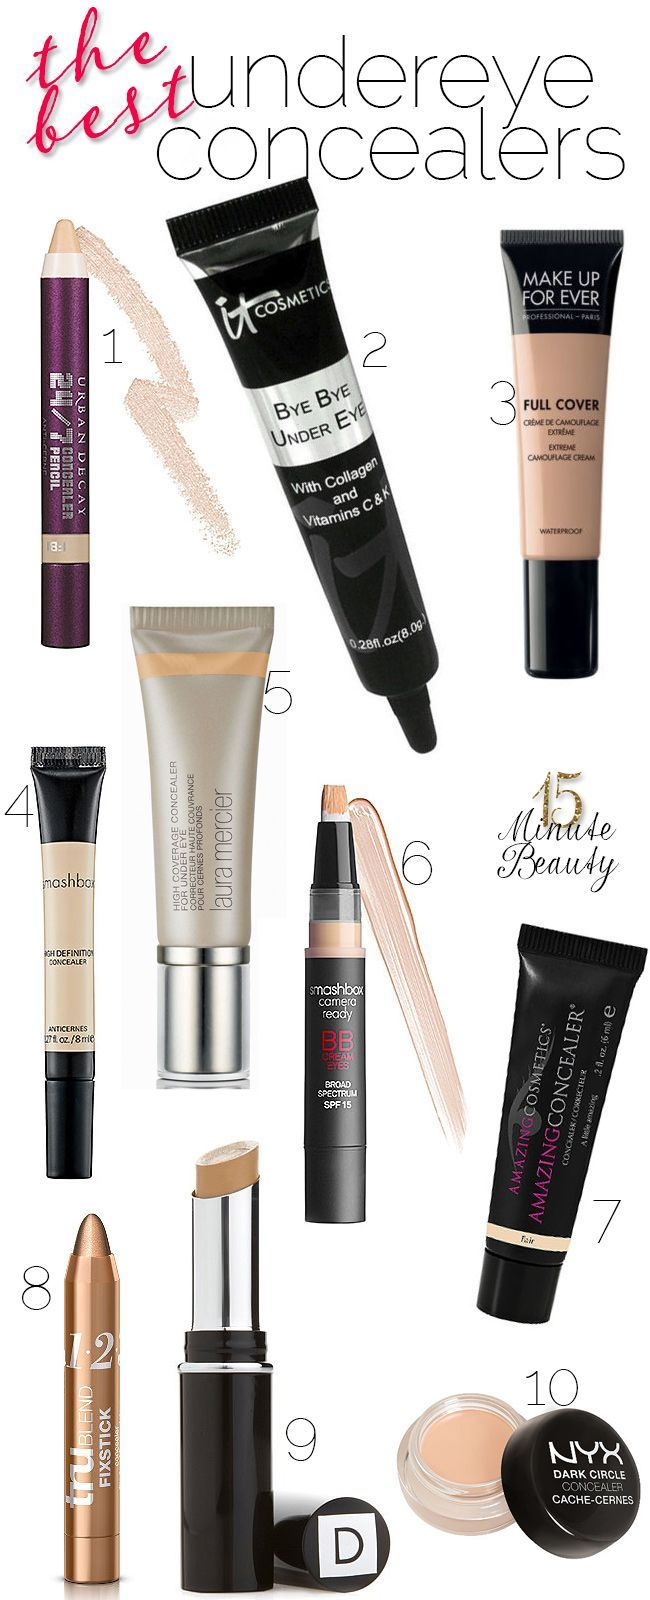 10 things no one ever tells you about concealer beautyhigh.com/...